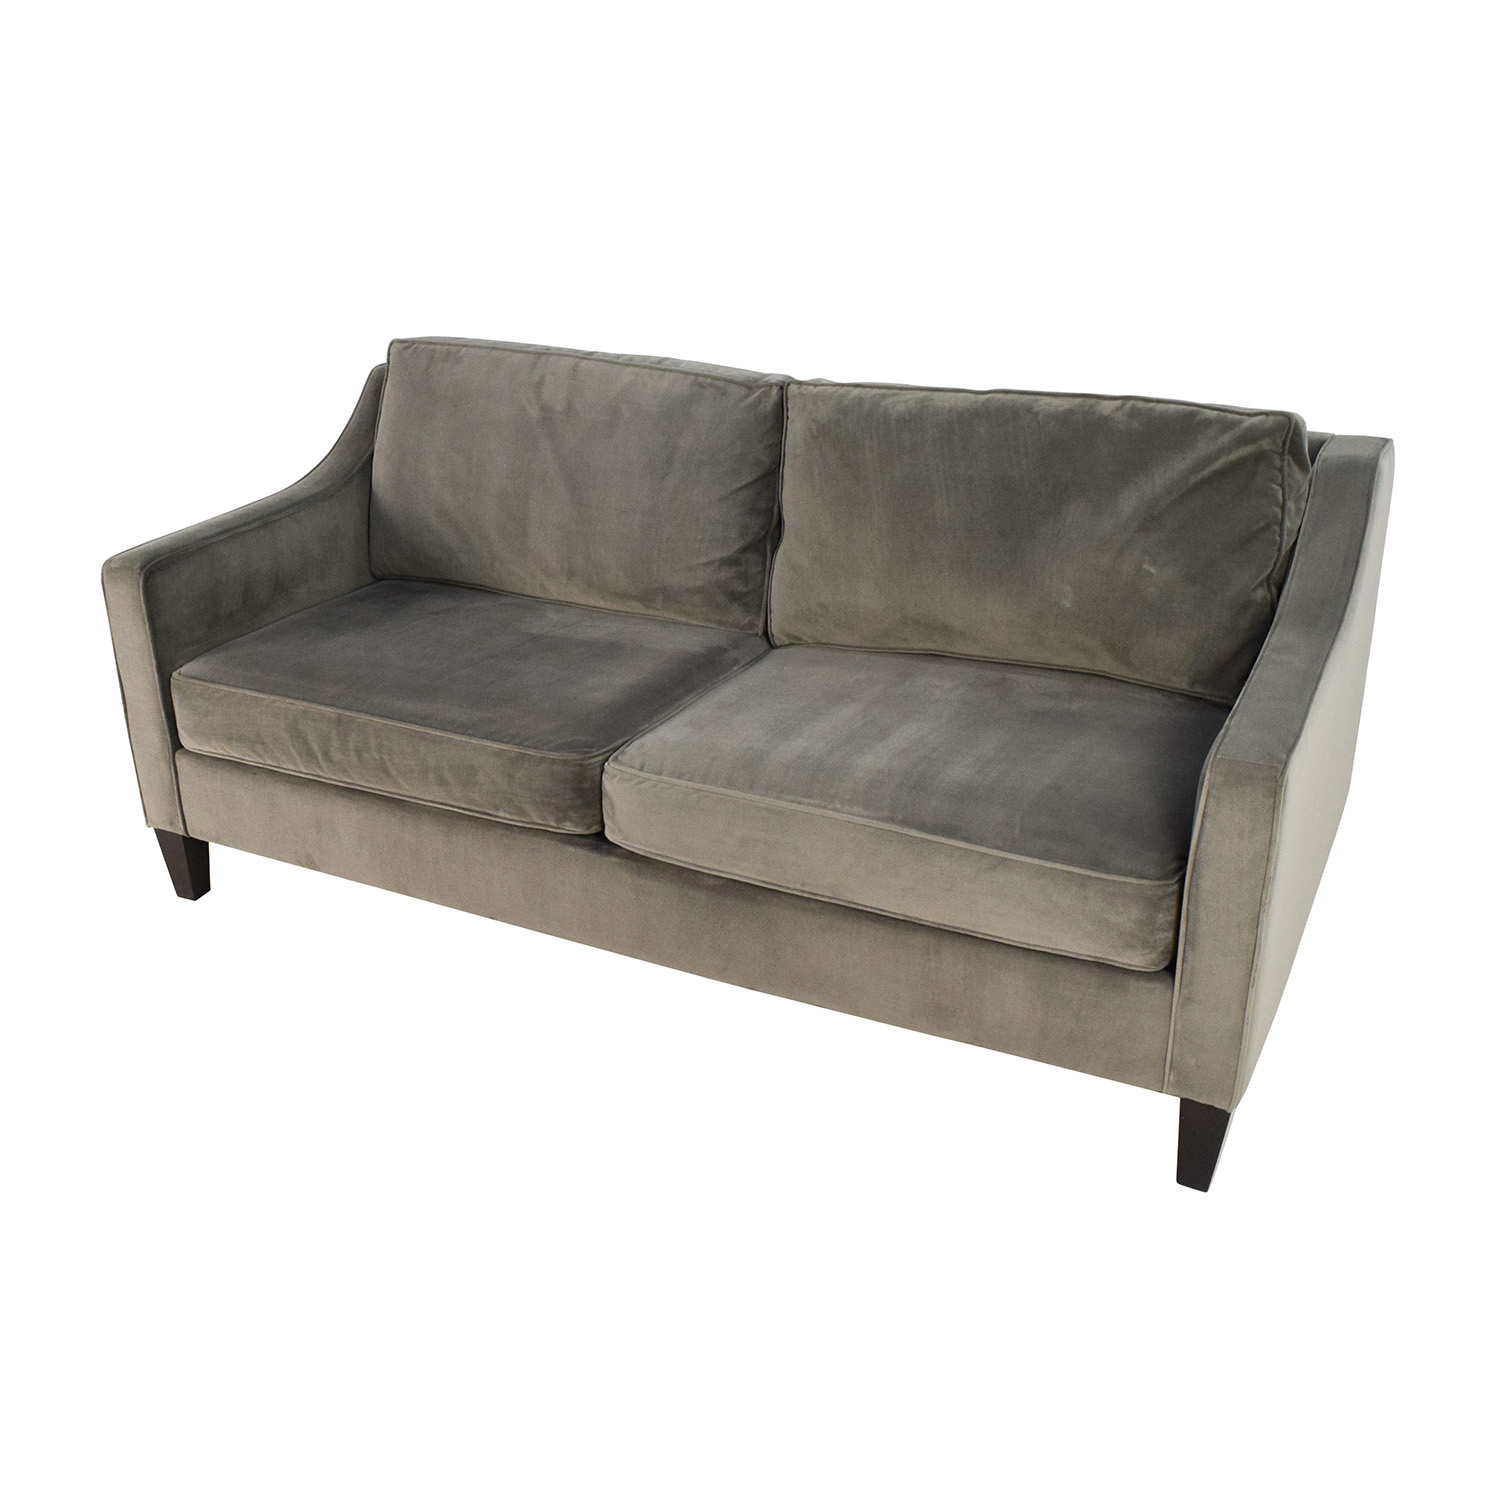 West Elm West Elm Paidge Sofa / Sofas